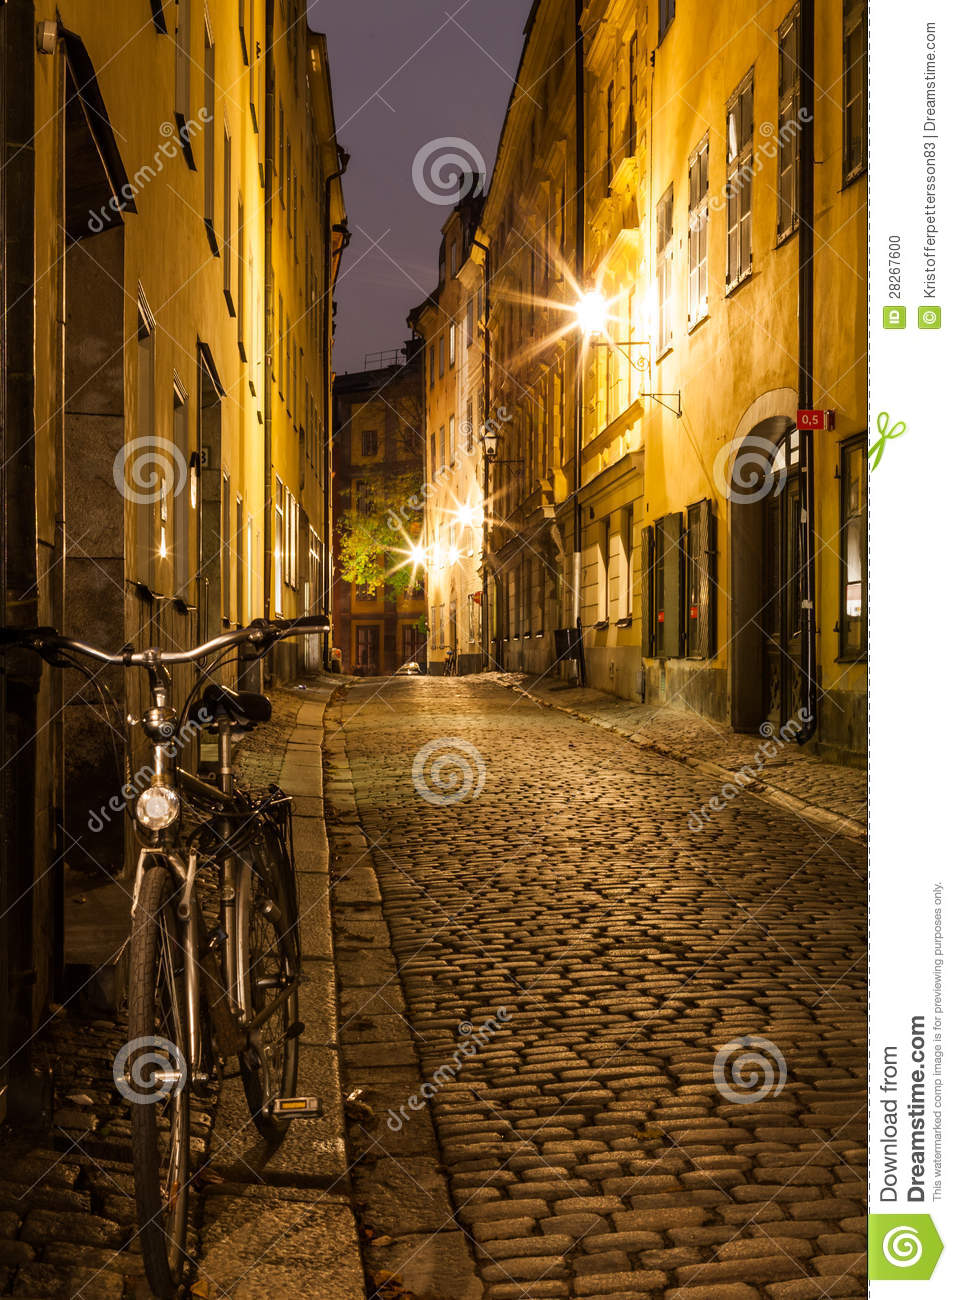 Empty Street In Stockholm Old Town At Night Stock Photo Image Of Narrow Victorian 28267600